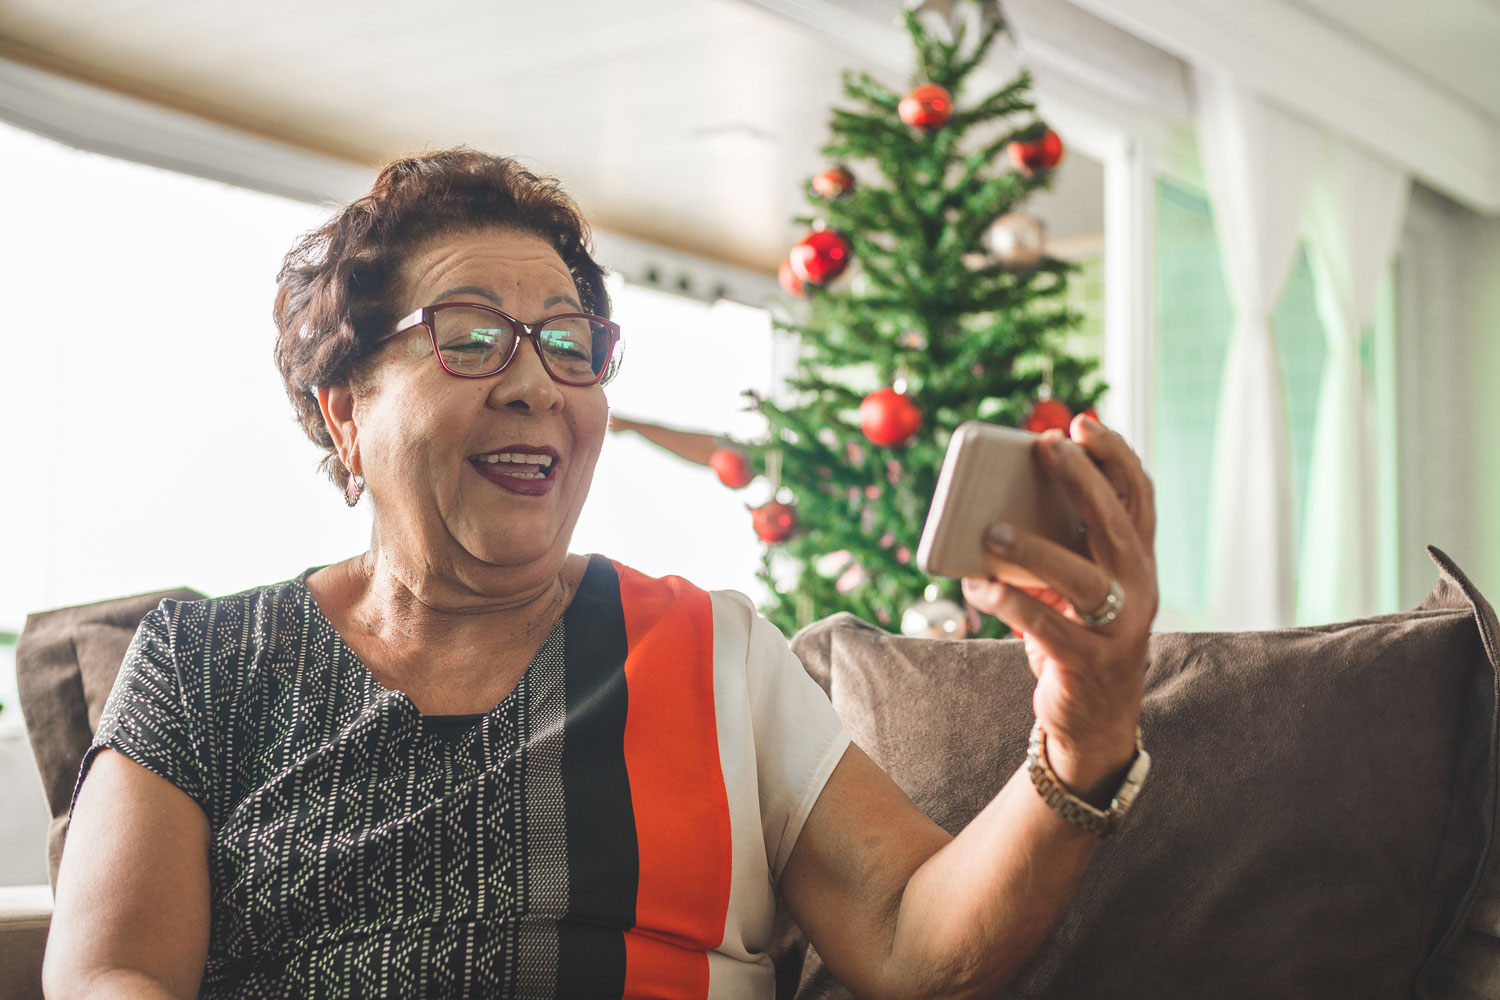 With COVID-19 cases on the rise and decreasing capacity at hospitals, hospice care can help you care for your most vulnerable loved ones, keeping them home and safe this holiday season.